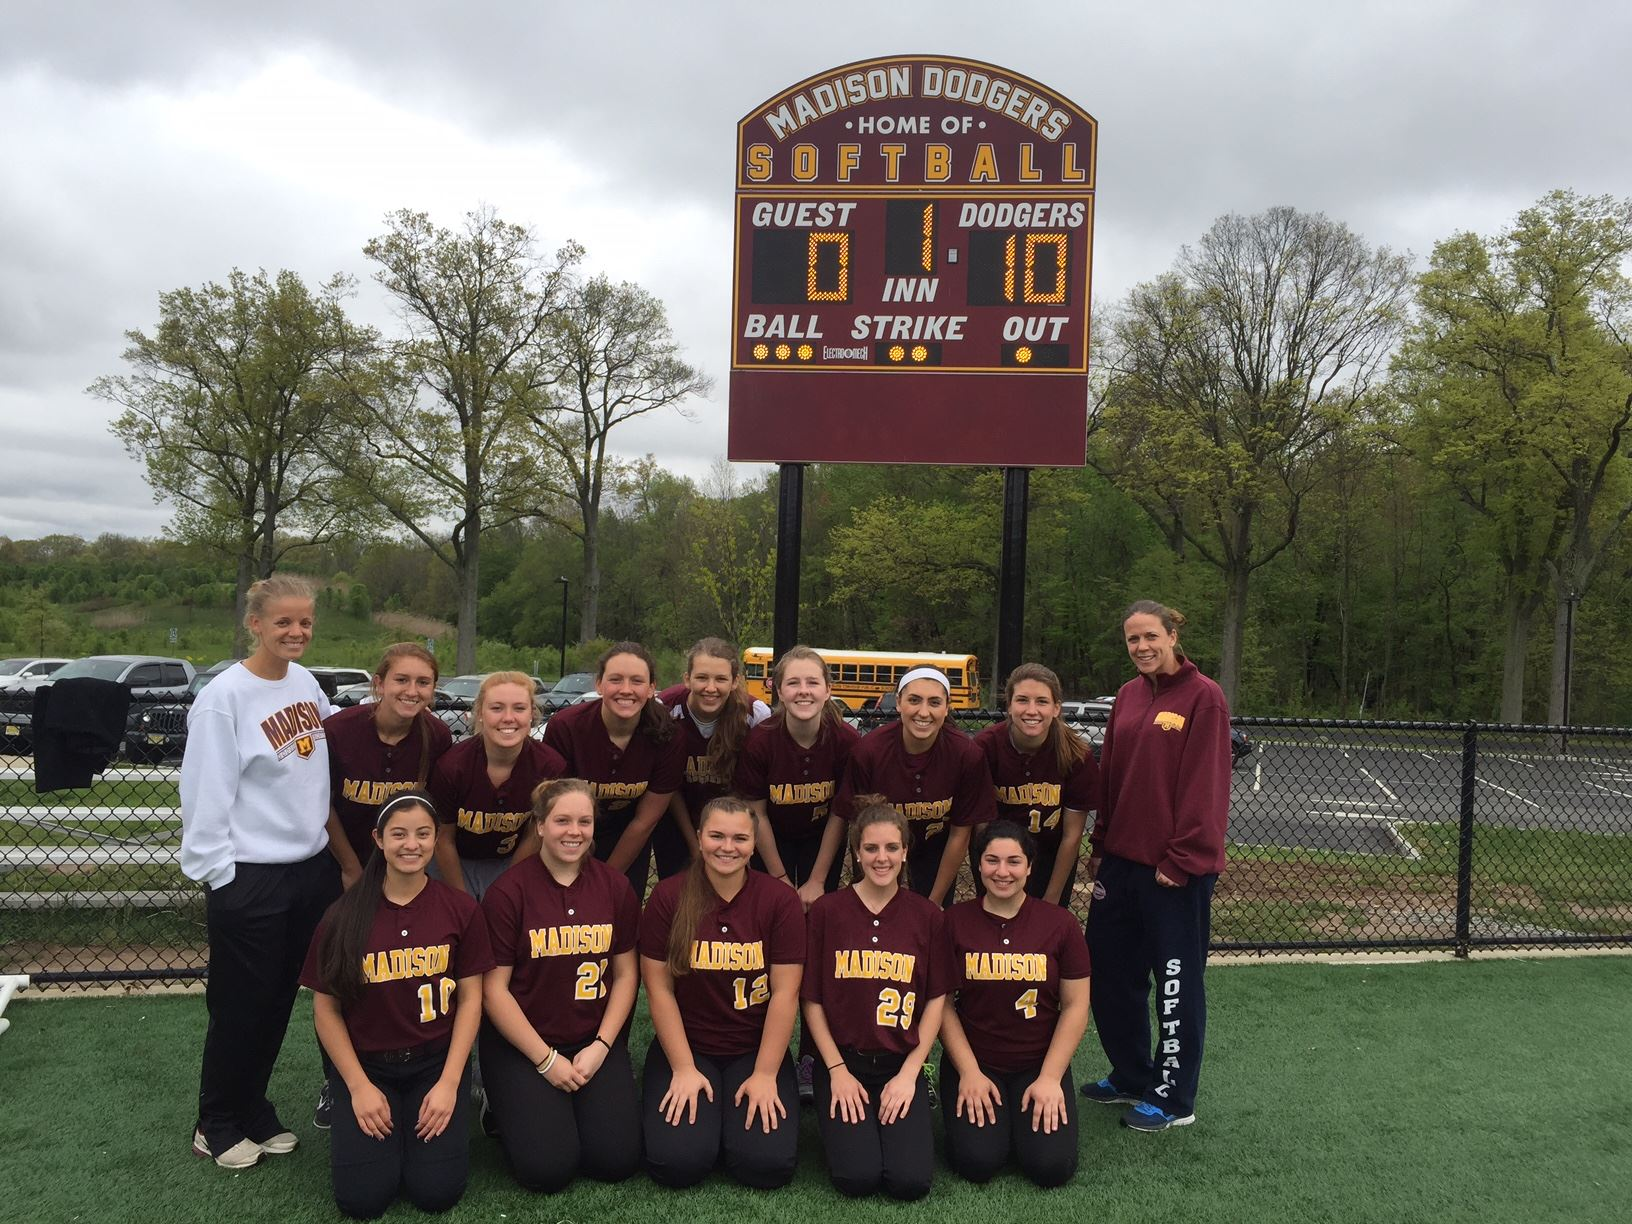 Madison_Softball_Team